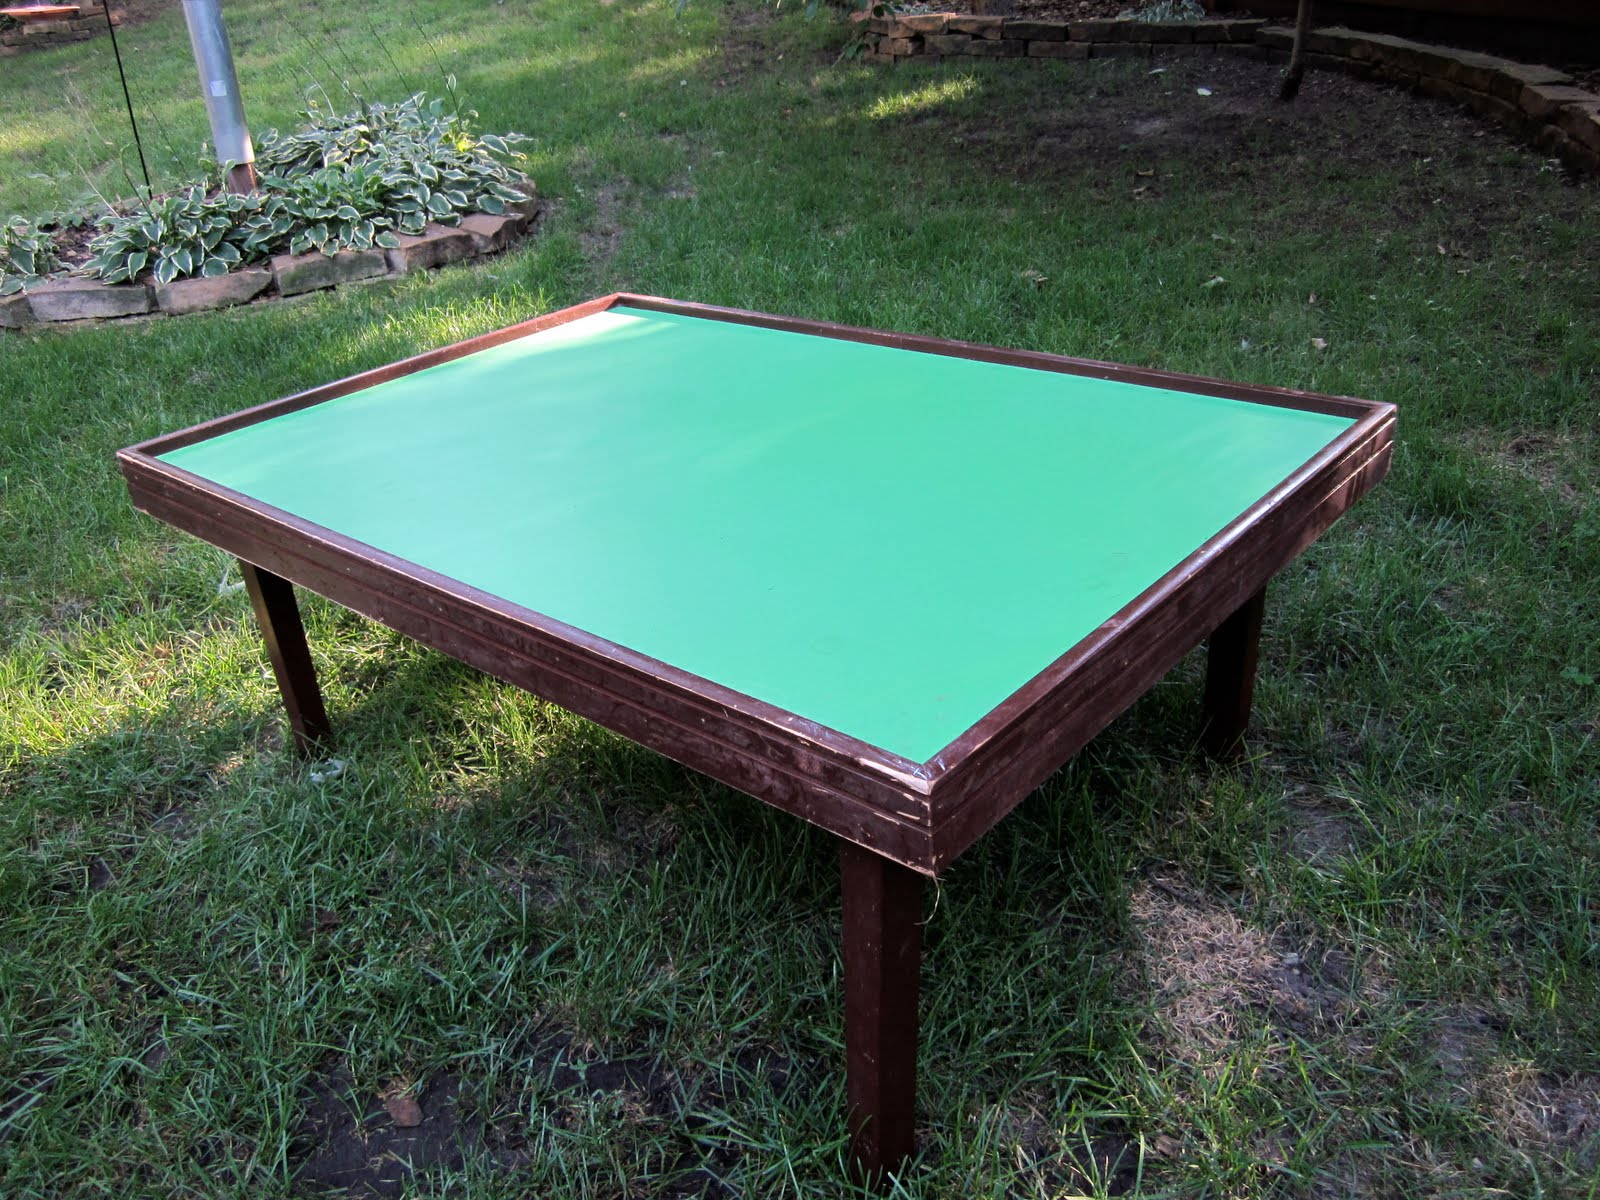 Id mommy id mommy projects make your own train table it had the best of both worlds was coffee table height train table size geotapseo Choice Image